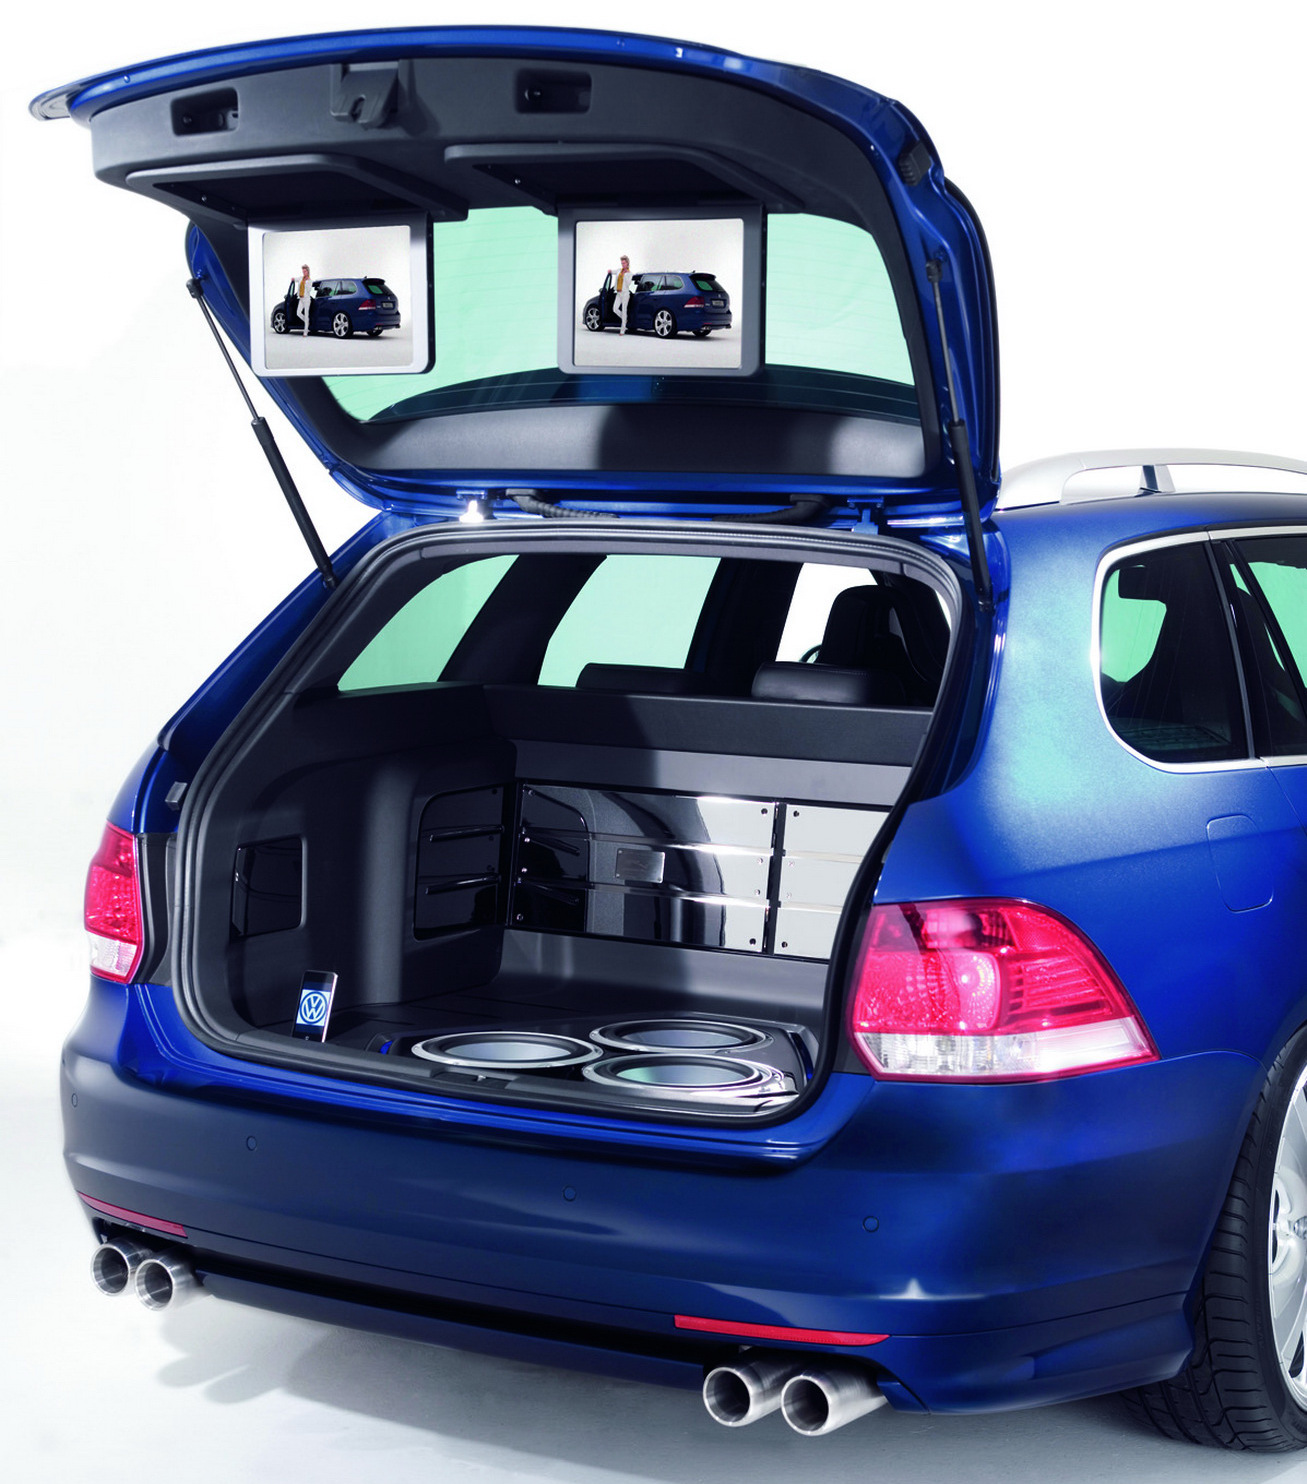 Vw 1600 Max Rpm: VW Golf Variant RaVe 2.0T 270 HP Concept Unveiled In Essen